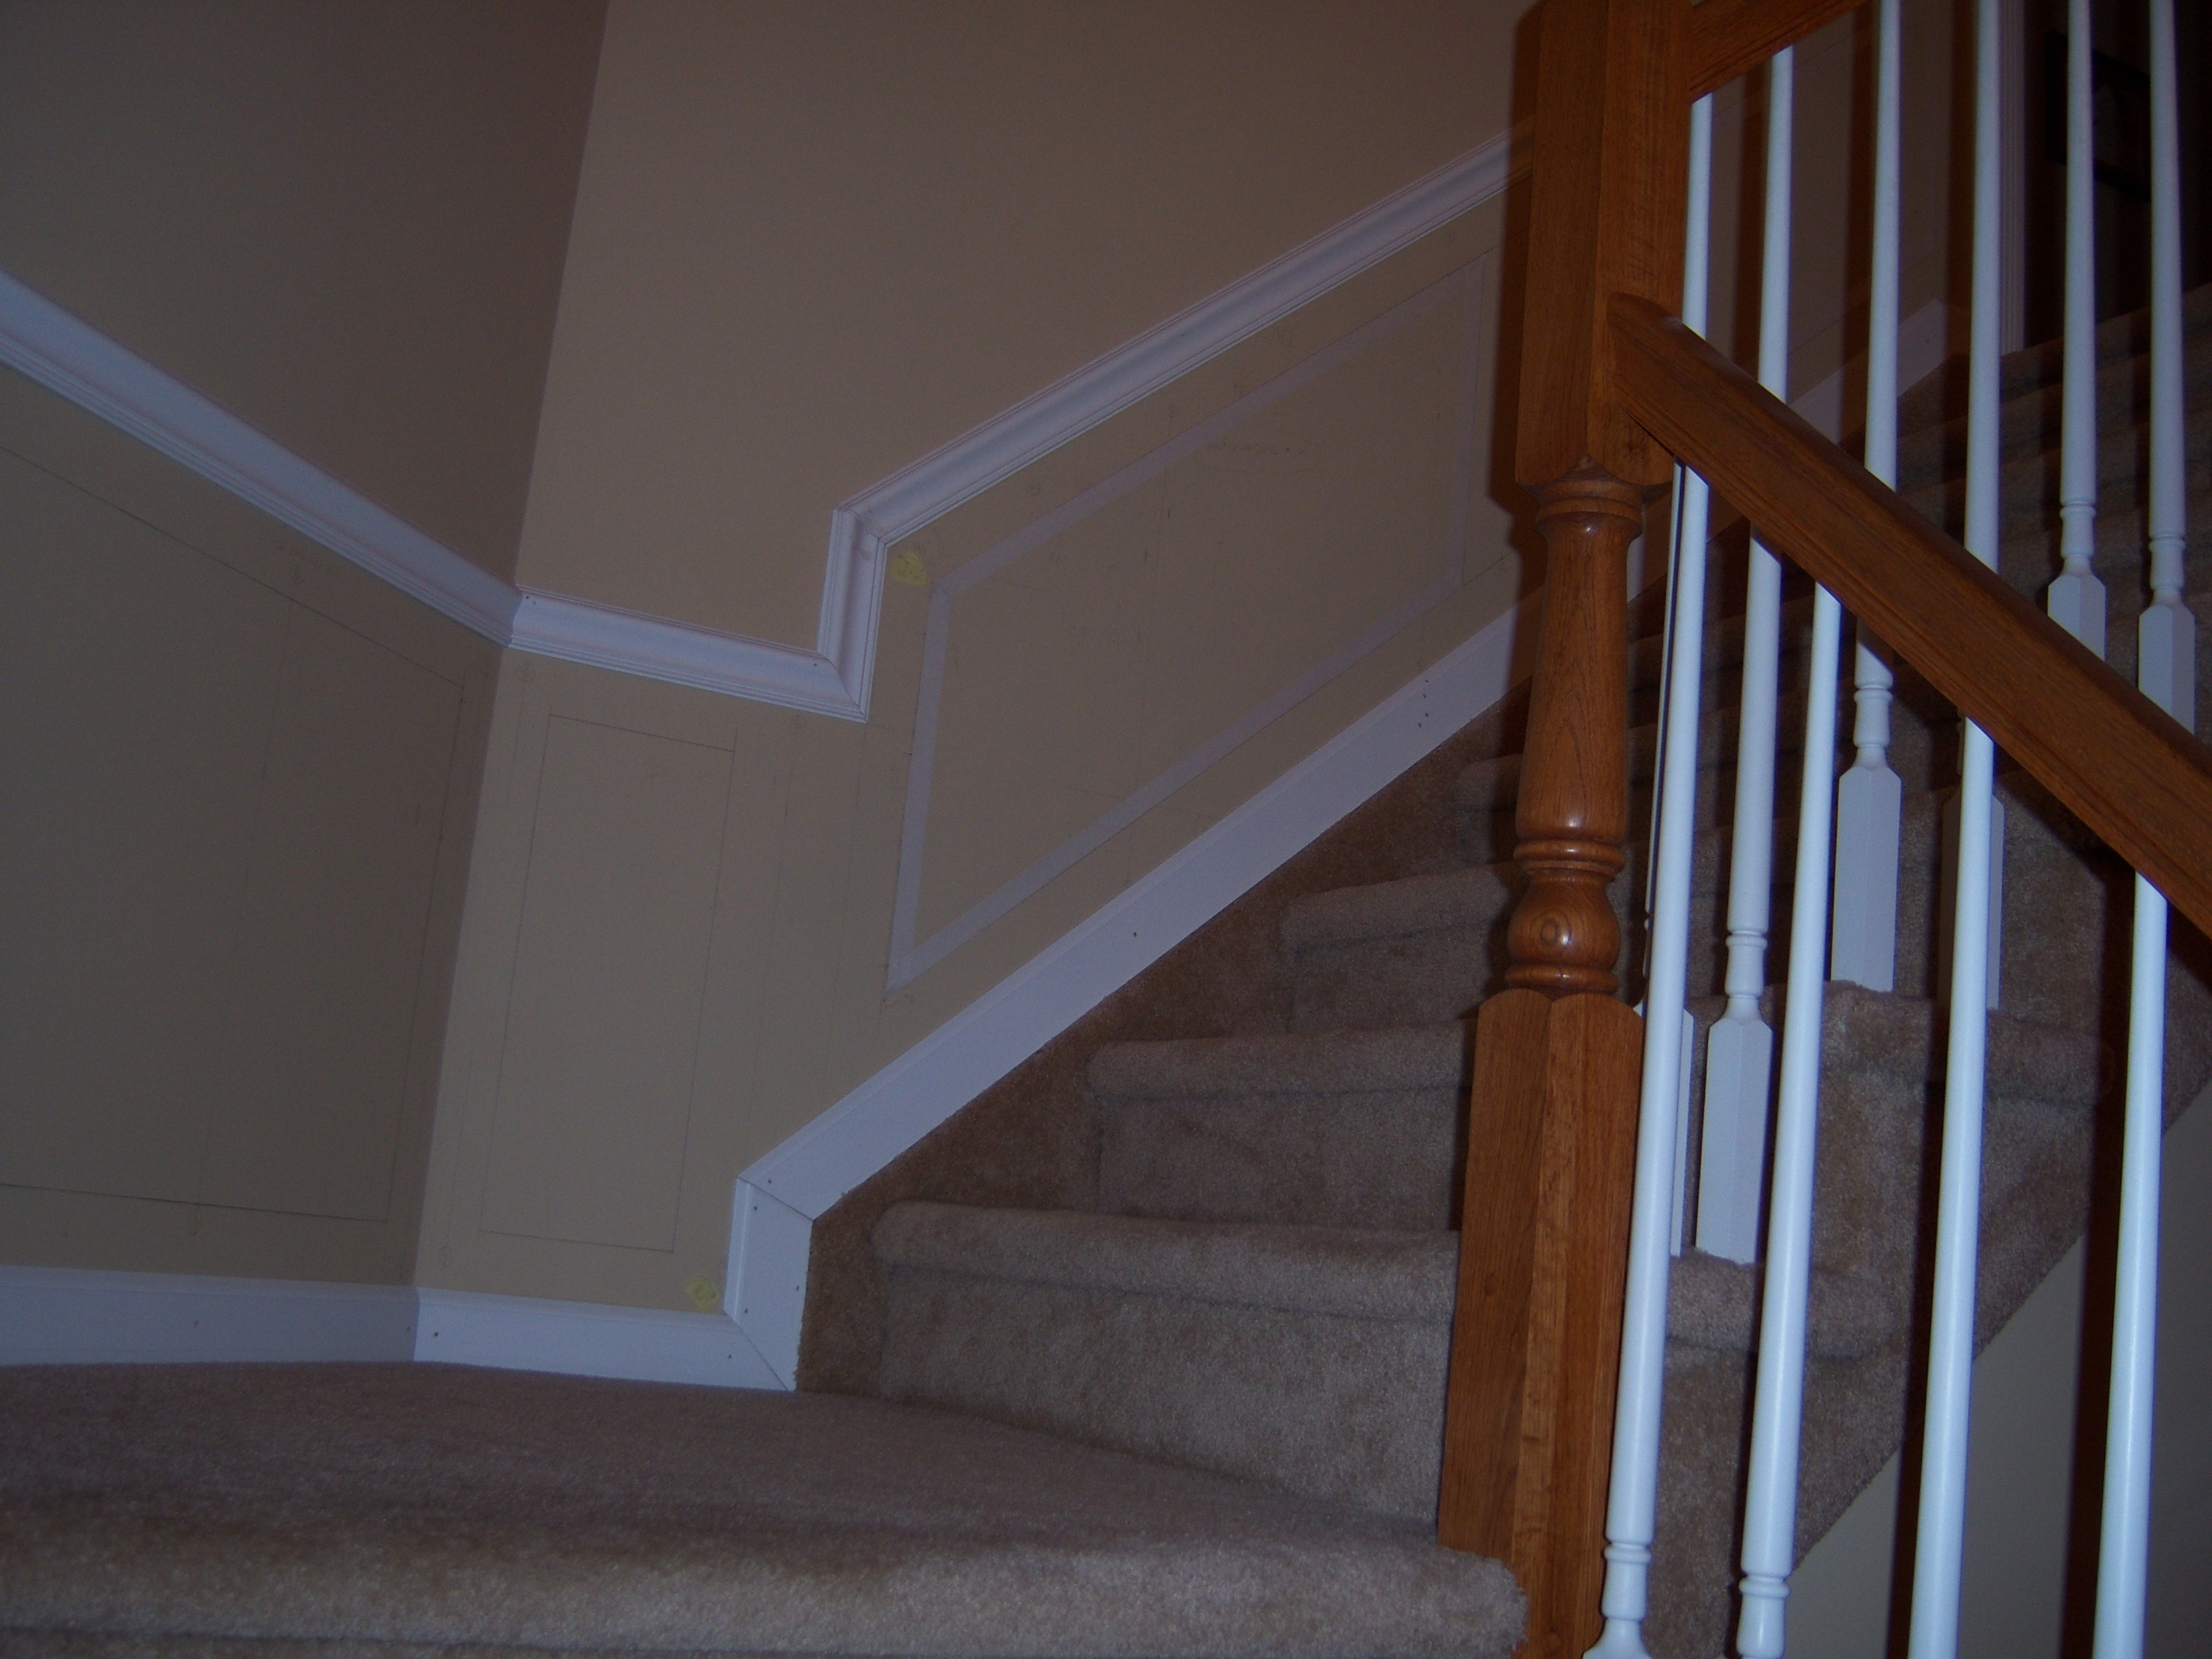 How to cut base molding in place - Stairway Chair Rail Base Molding Installation